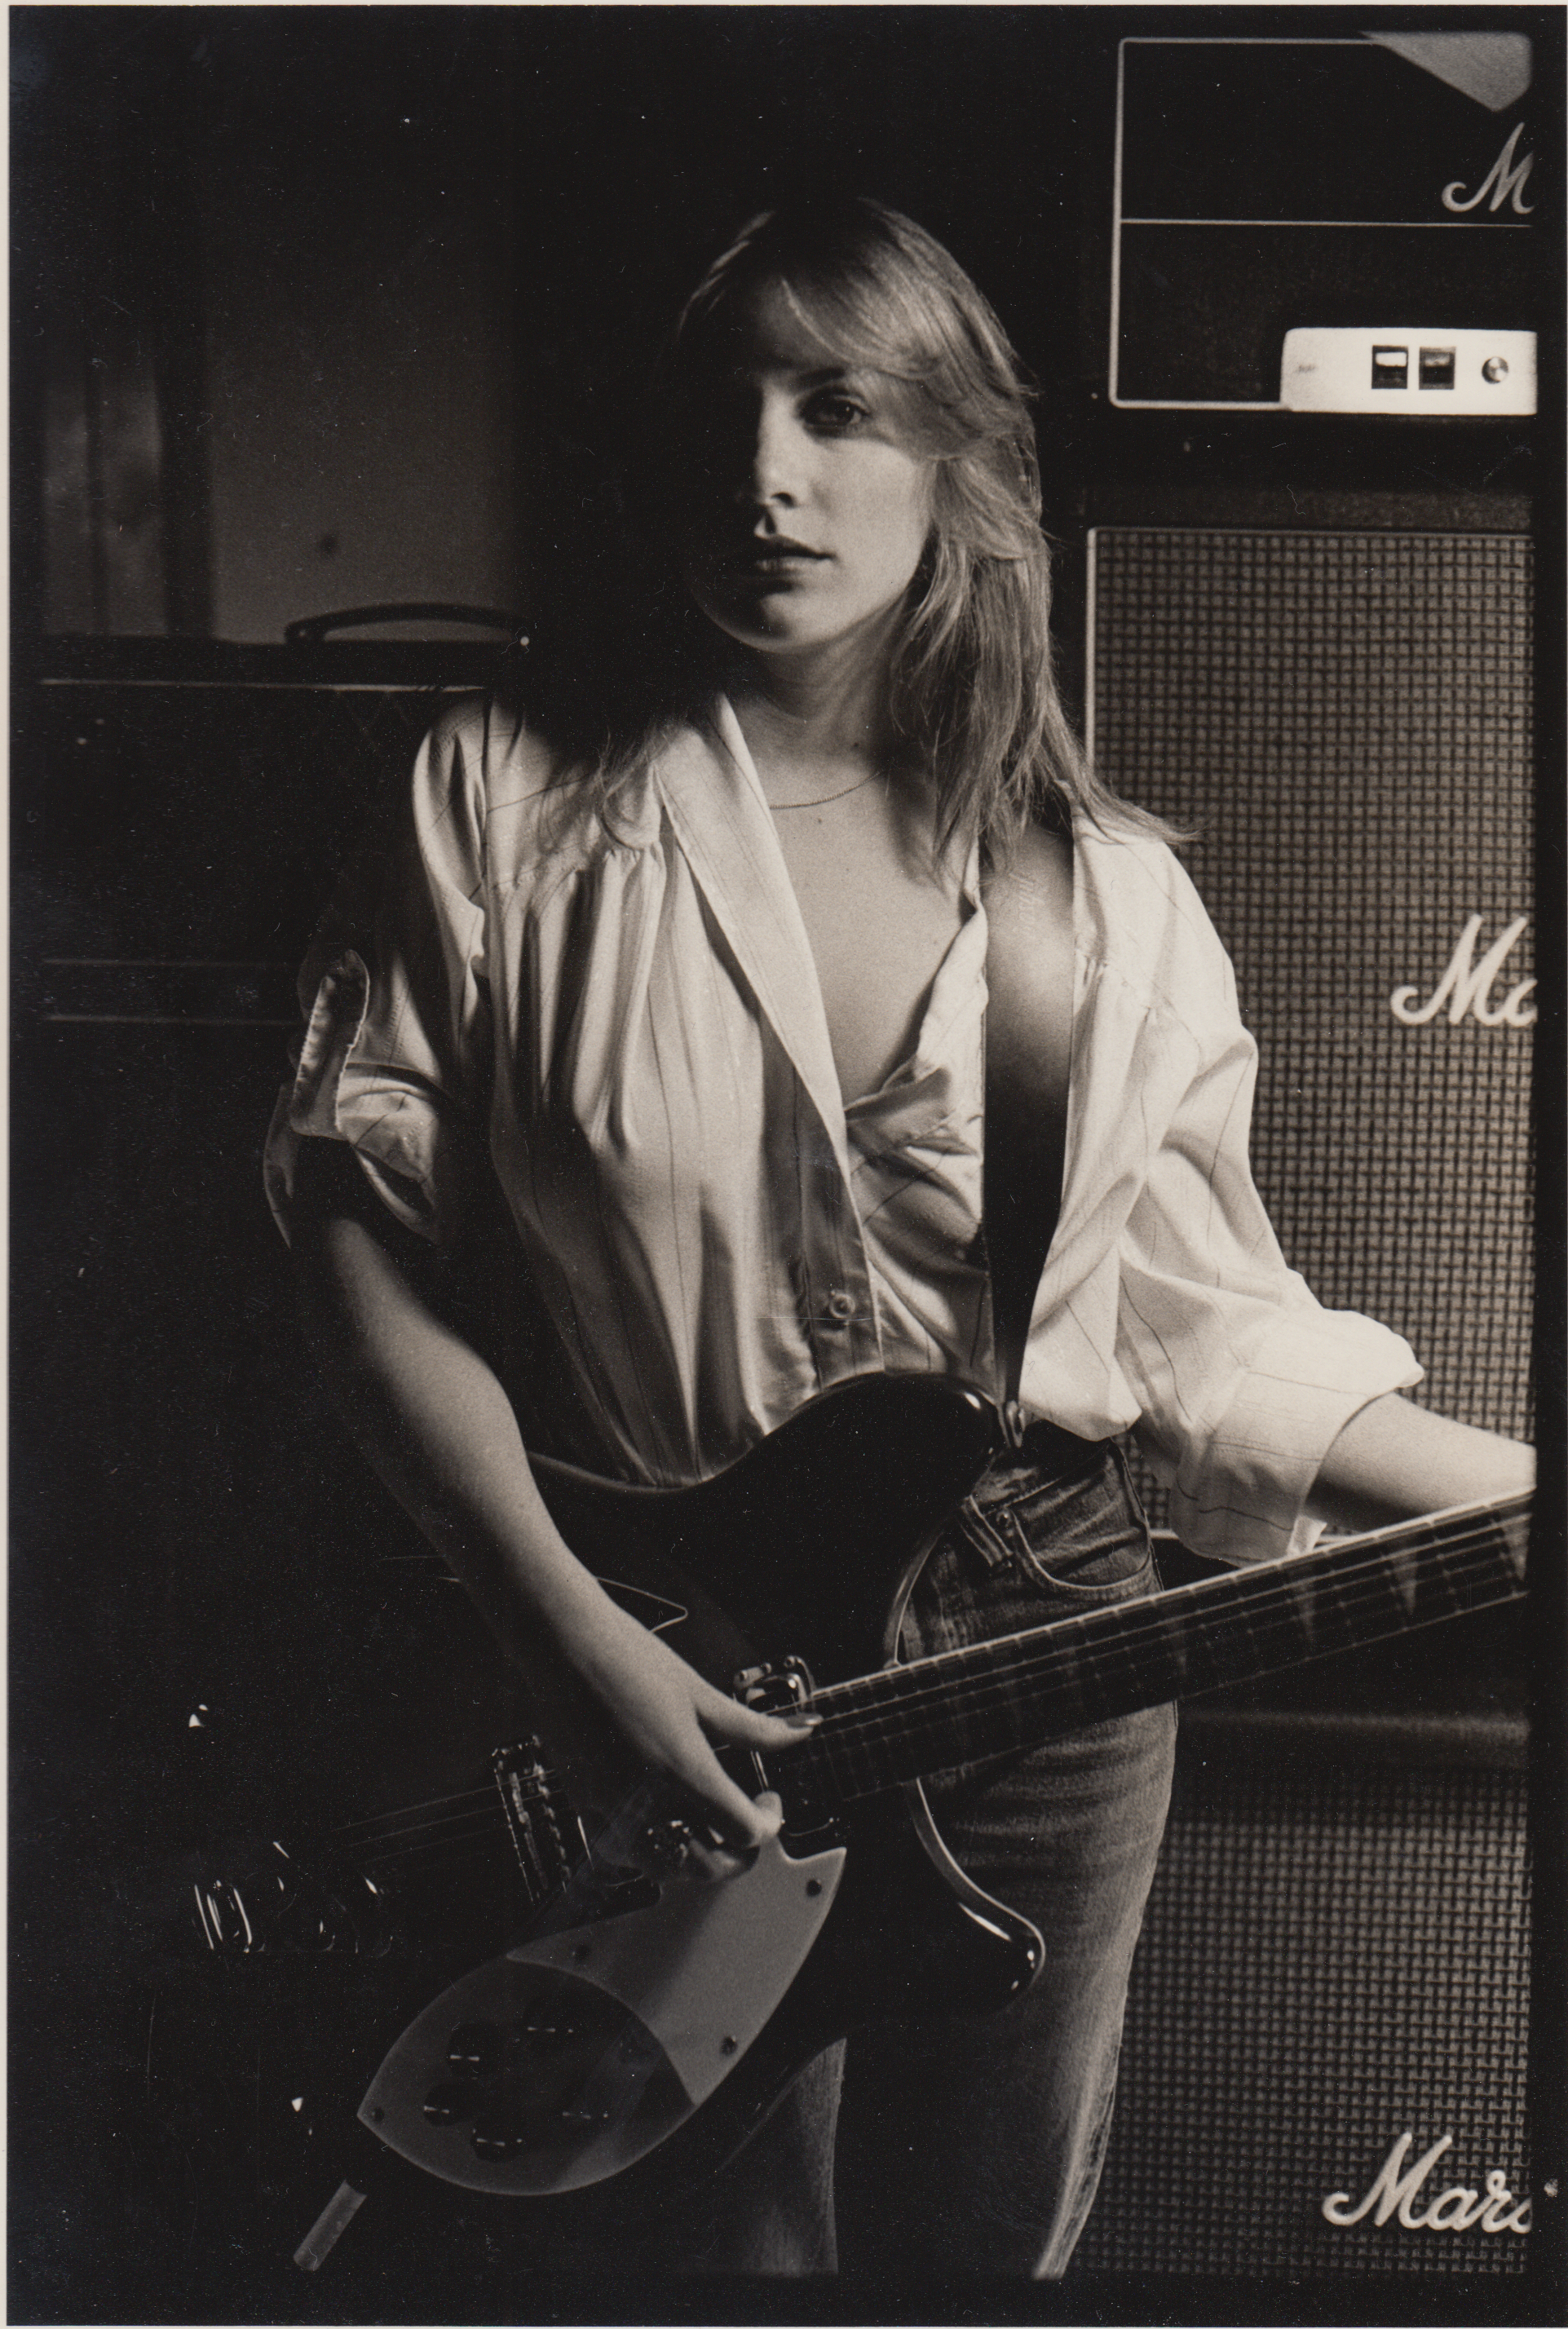 From My Younger Days With A Cool Guitar.